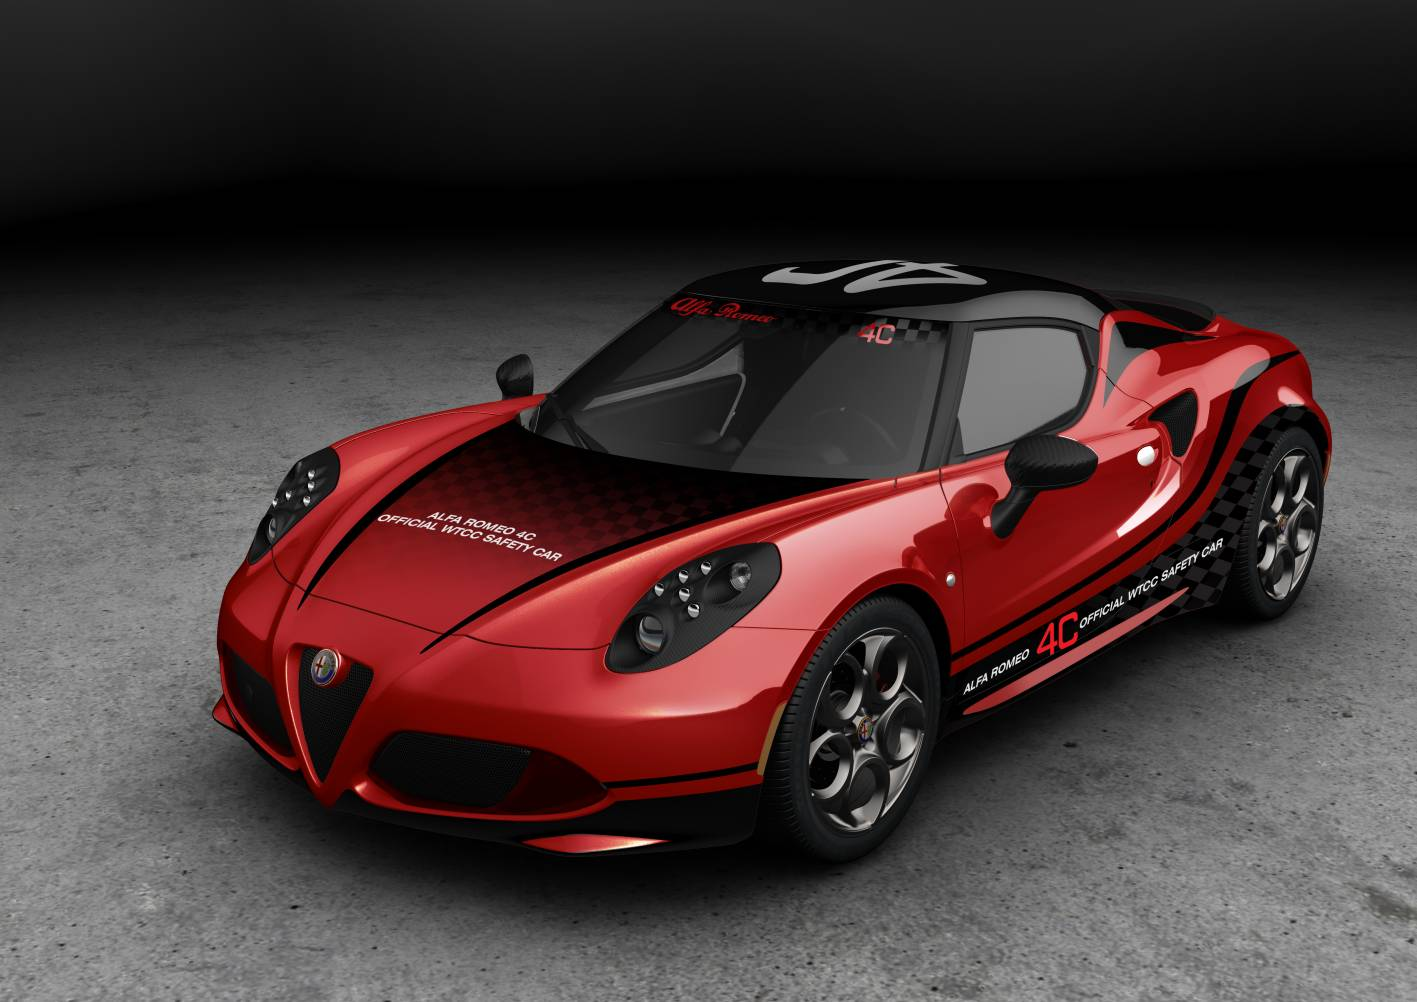 alfa romeo cars news 4c coupe announced as wtcc safety car. Black Bedroom Furniture Sets. Home Design Ideas